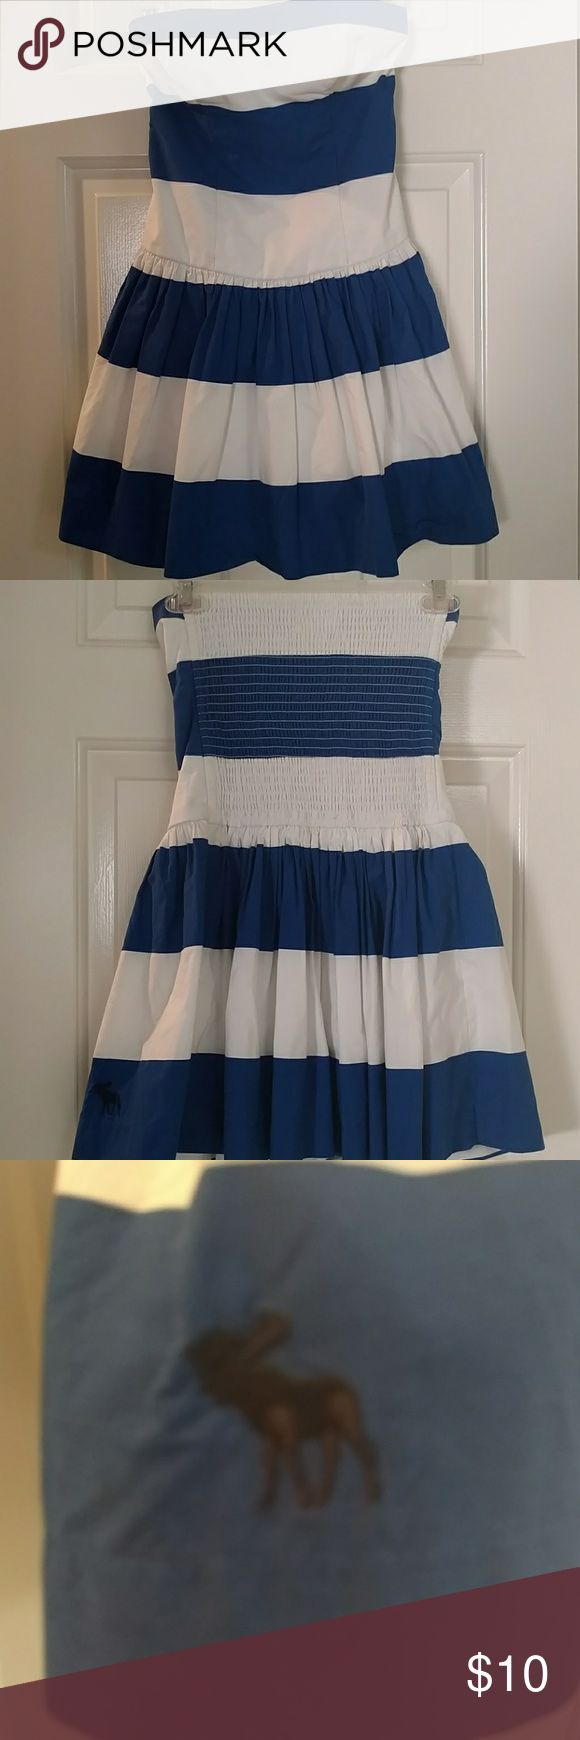 Strapless Abercrombie and Fitch dress Blue & white perfect spring/ summer dress Abercrombie & Fitch Dresses Midi